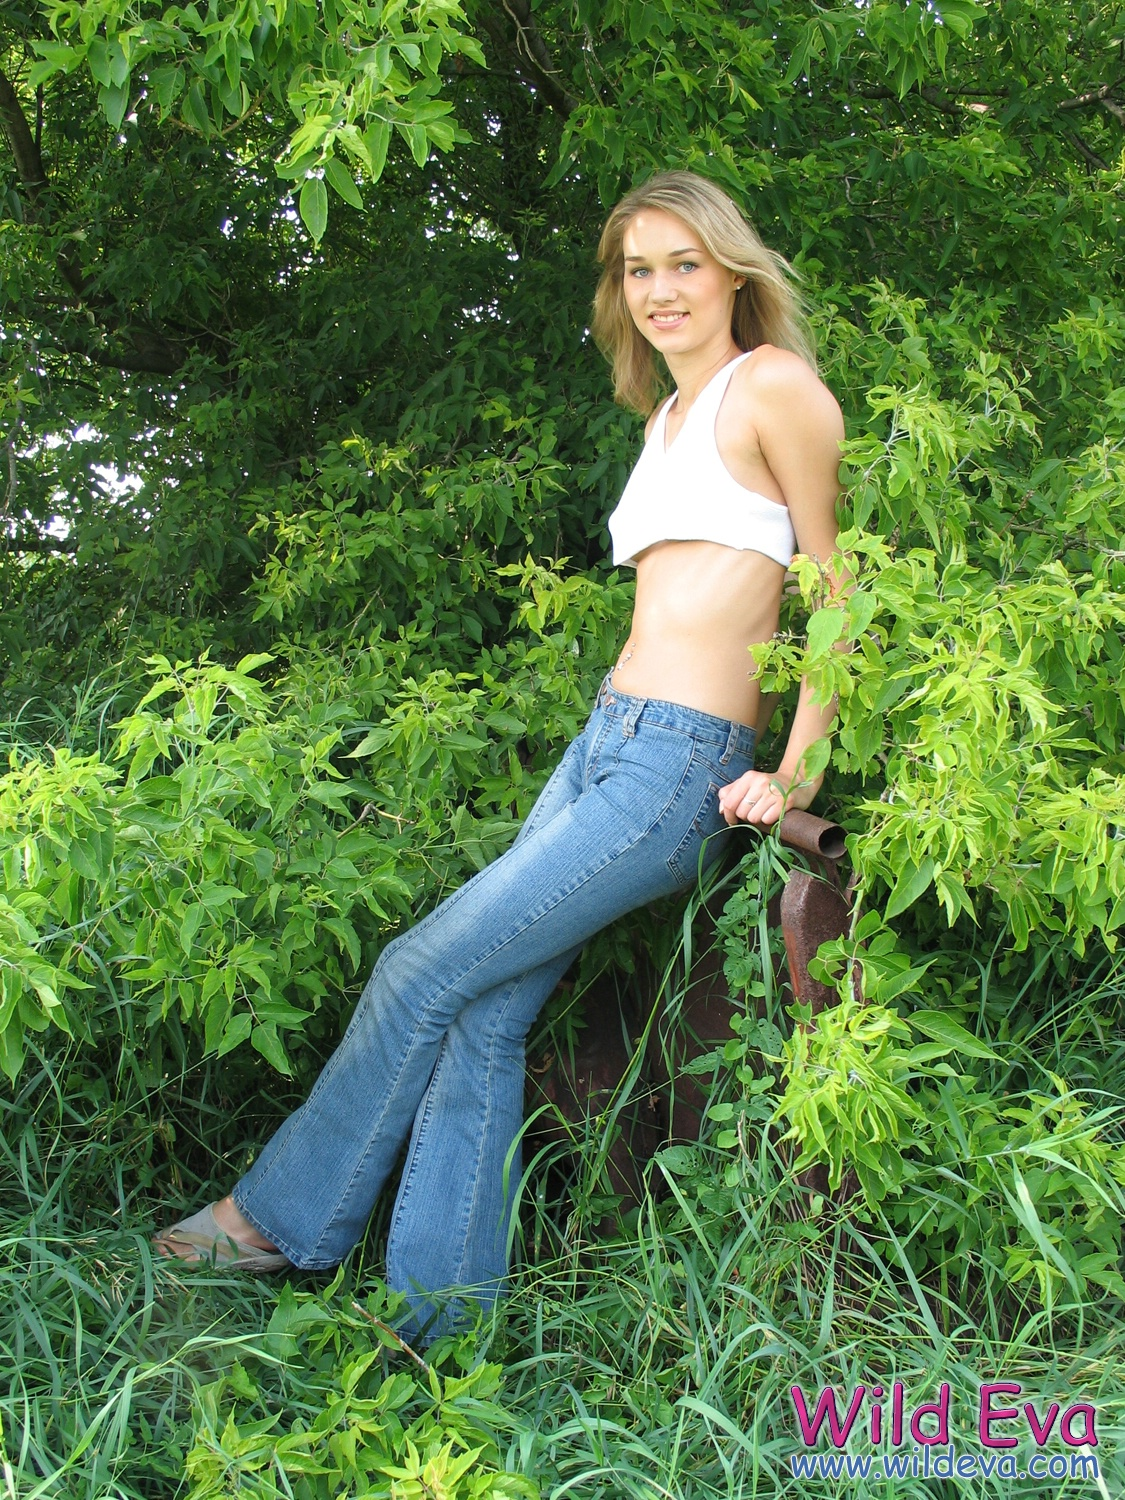 wild-eva-meadow-naked-jeans-pussy-02